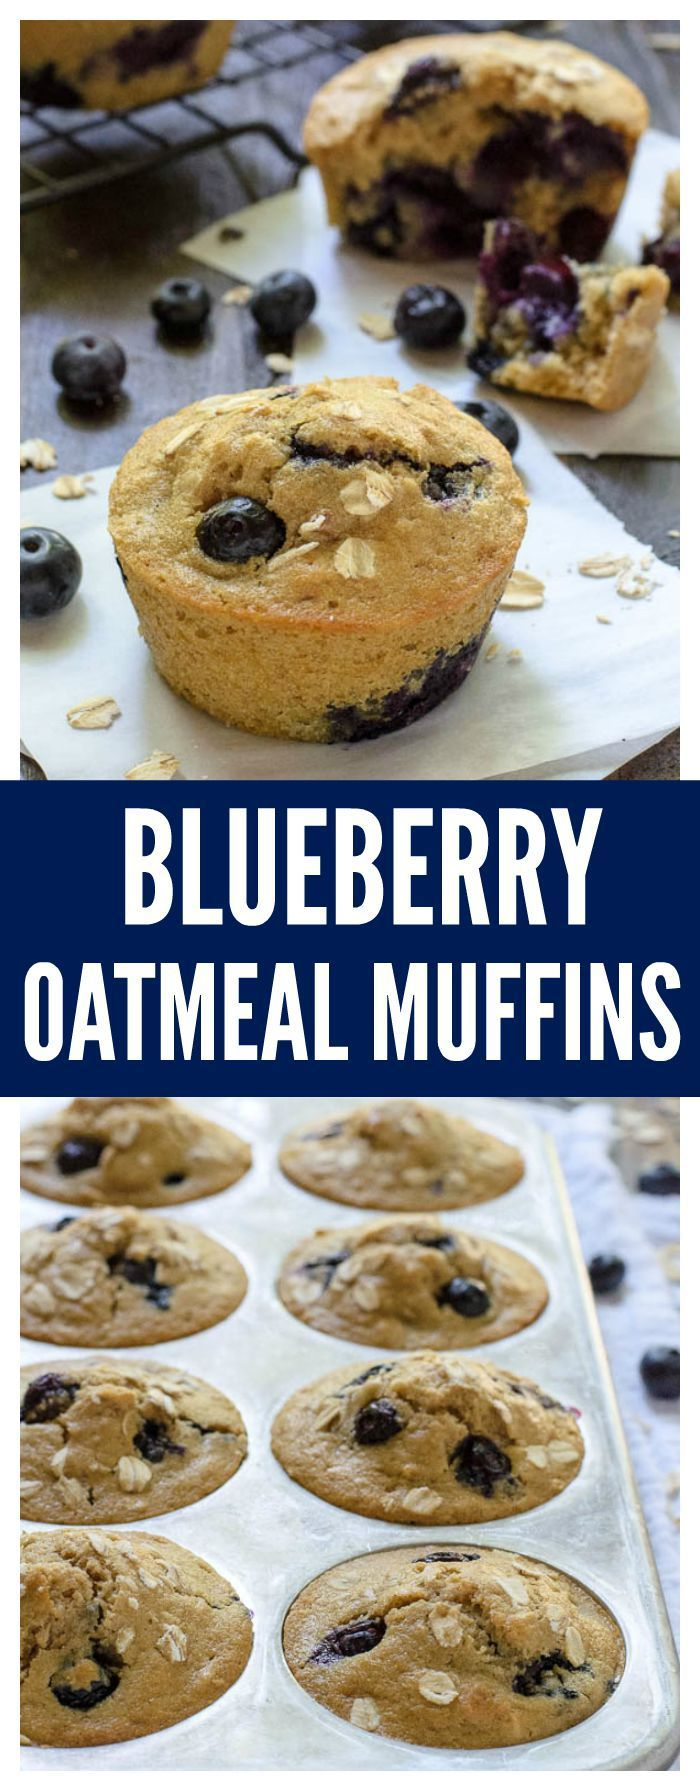 The BEST EVER Blueberry Muffins—Perfect back to school breakfast and after school snack recipe. Easy, healthy and kids love them. Can make and freeze ahead. www.wellplated.com @Well Plated